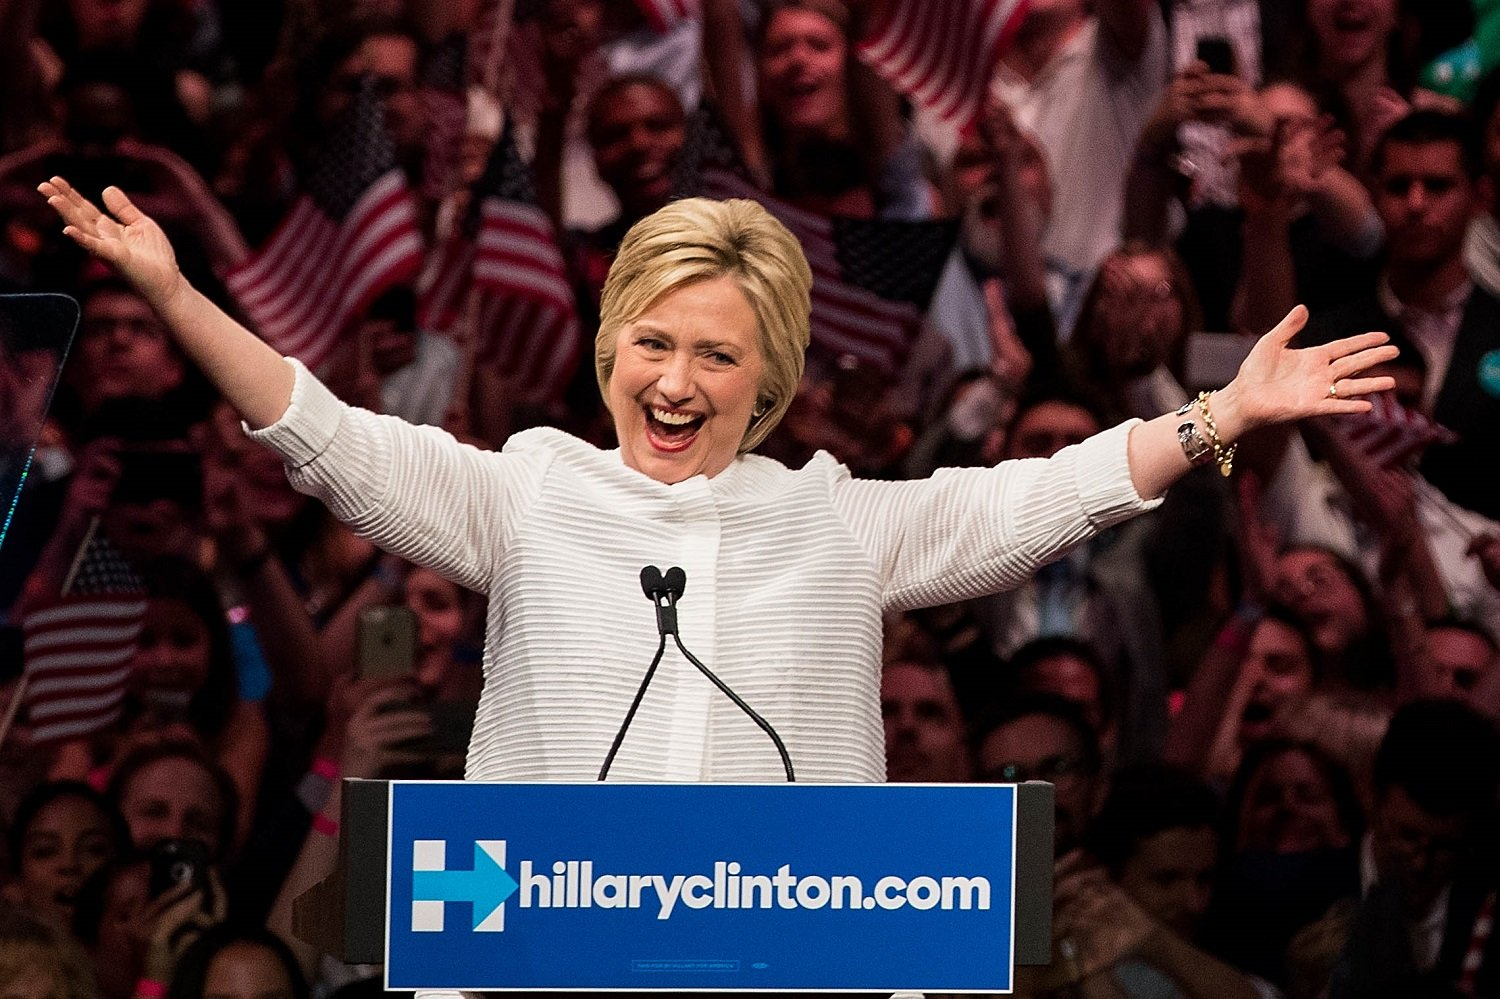 Hillary Clinton Getty Images/Drew Angerer